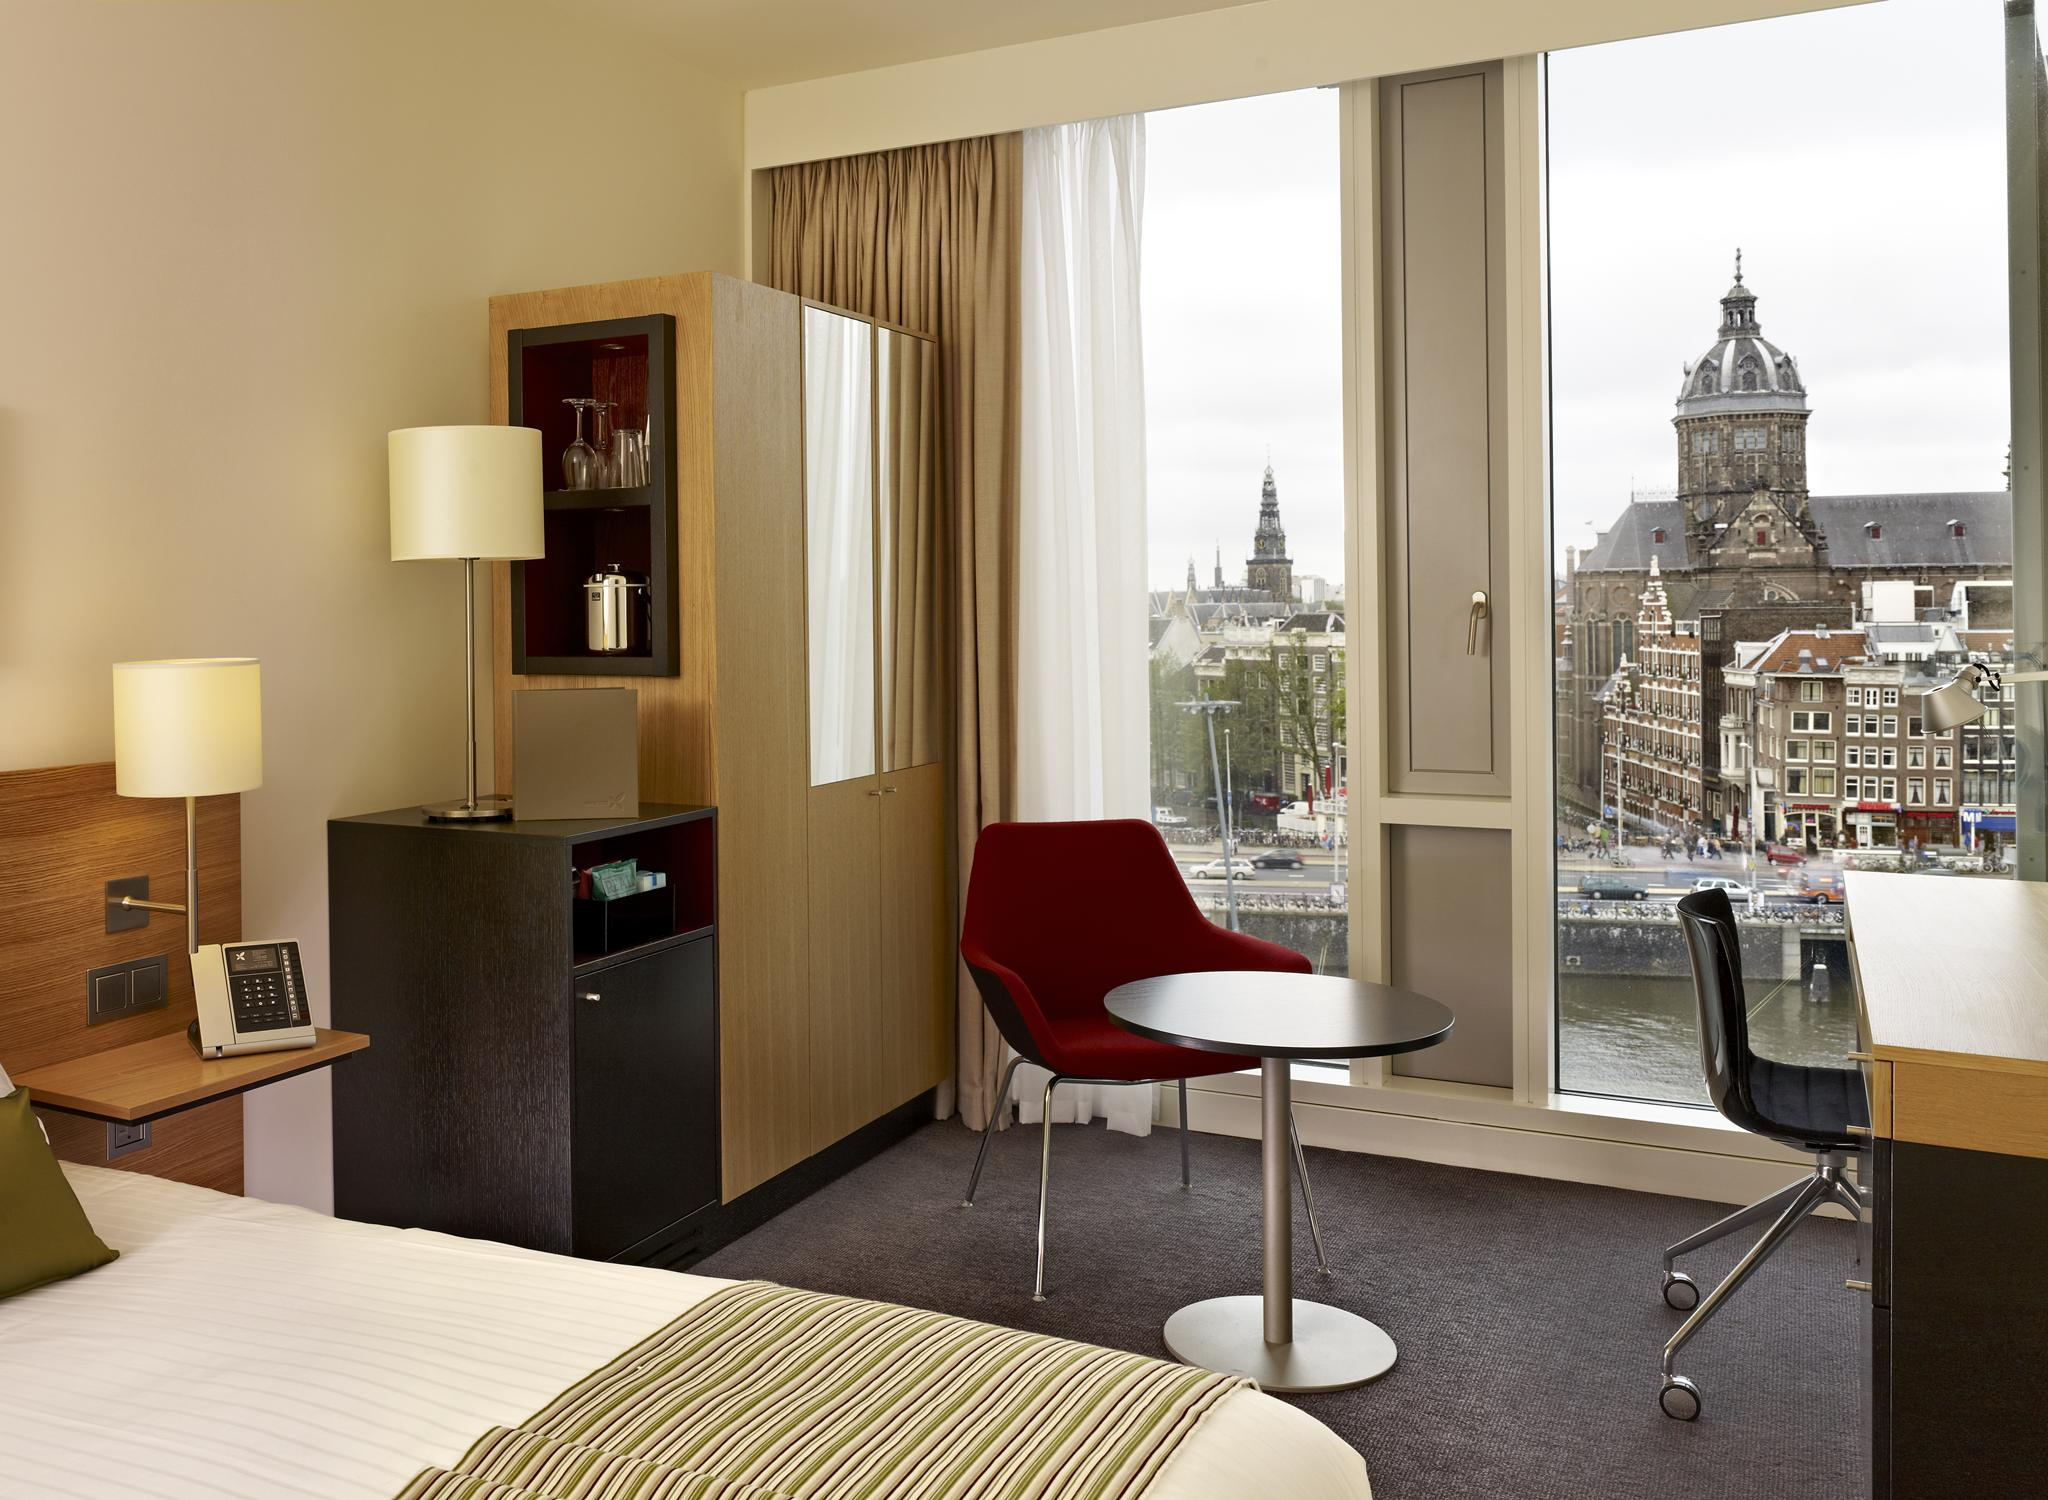 DoubleTree Amsterdam Centraal - Hotel ad Amsterdam